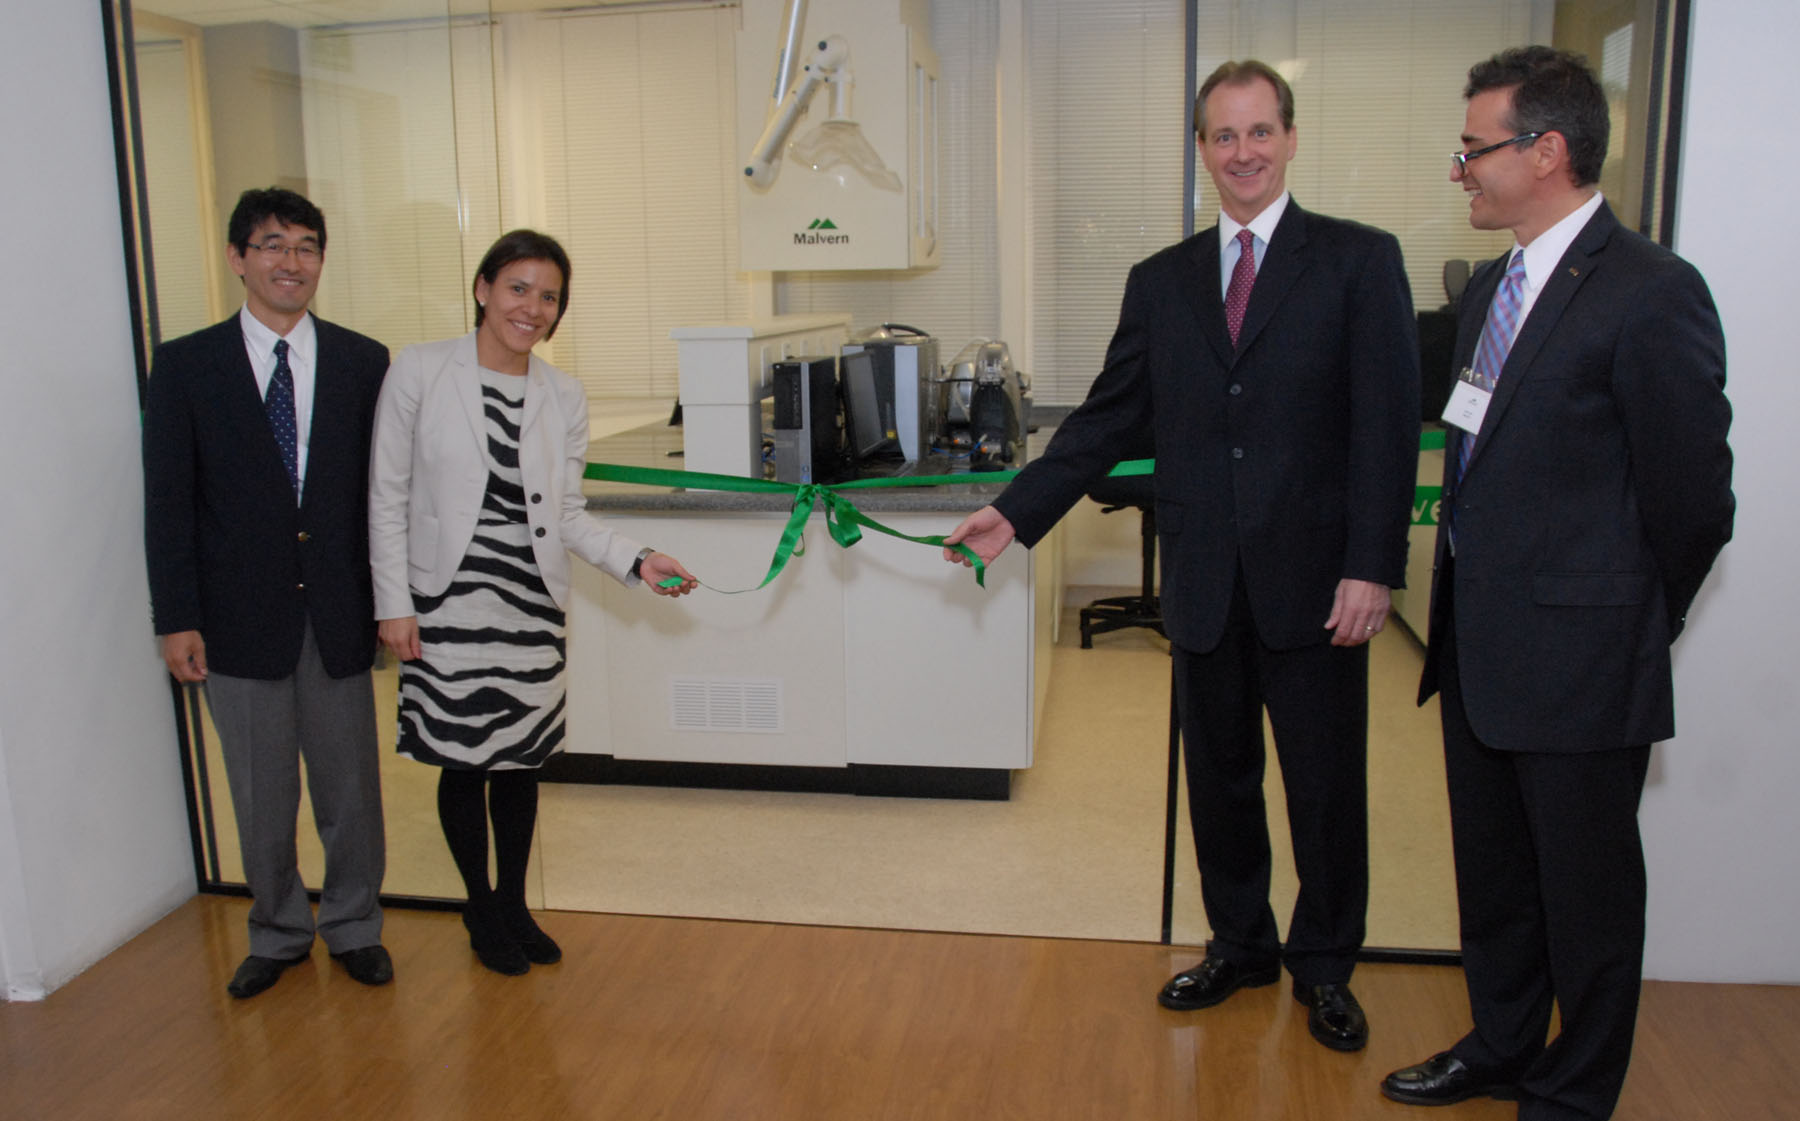 Malvern Instruments opens new applications laboratory in São Paulo to support strong business growth in South America